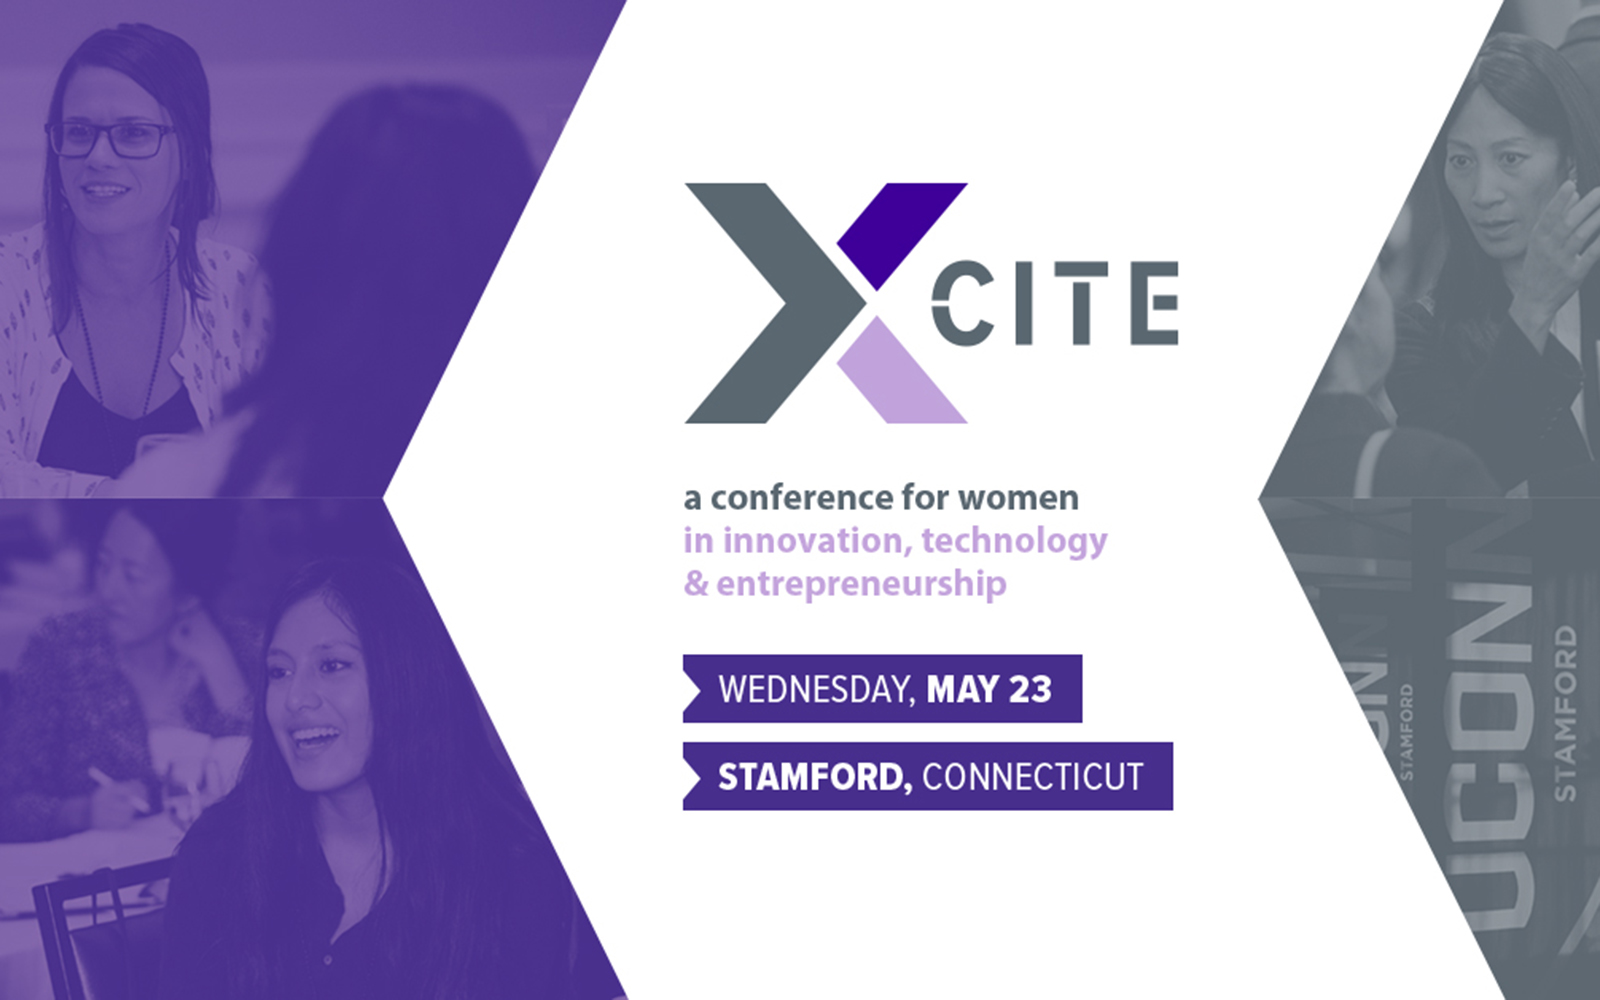 xCITE 2018 Conference for Women in Innovation, Technology, and Entrepreneurship